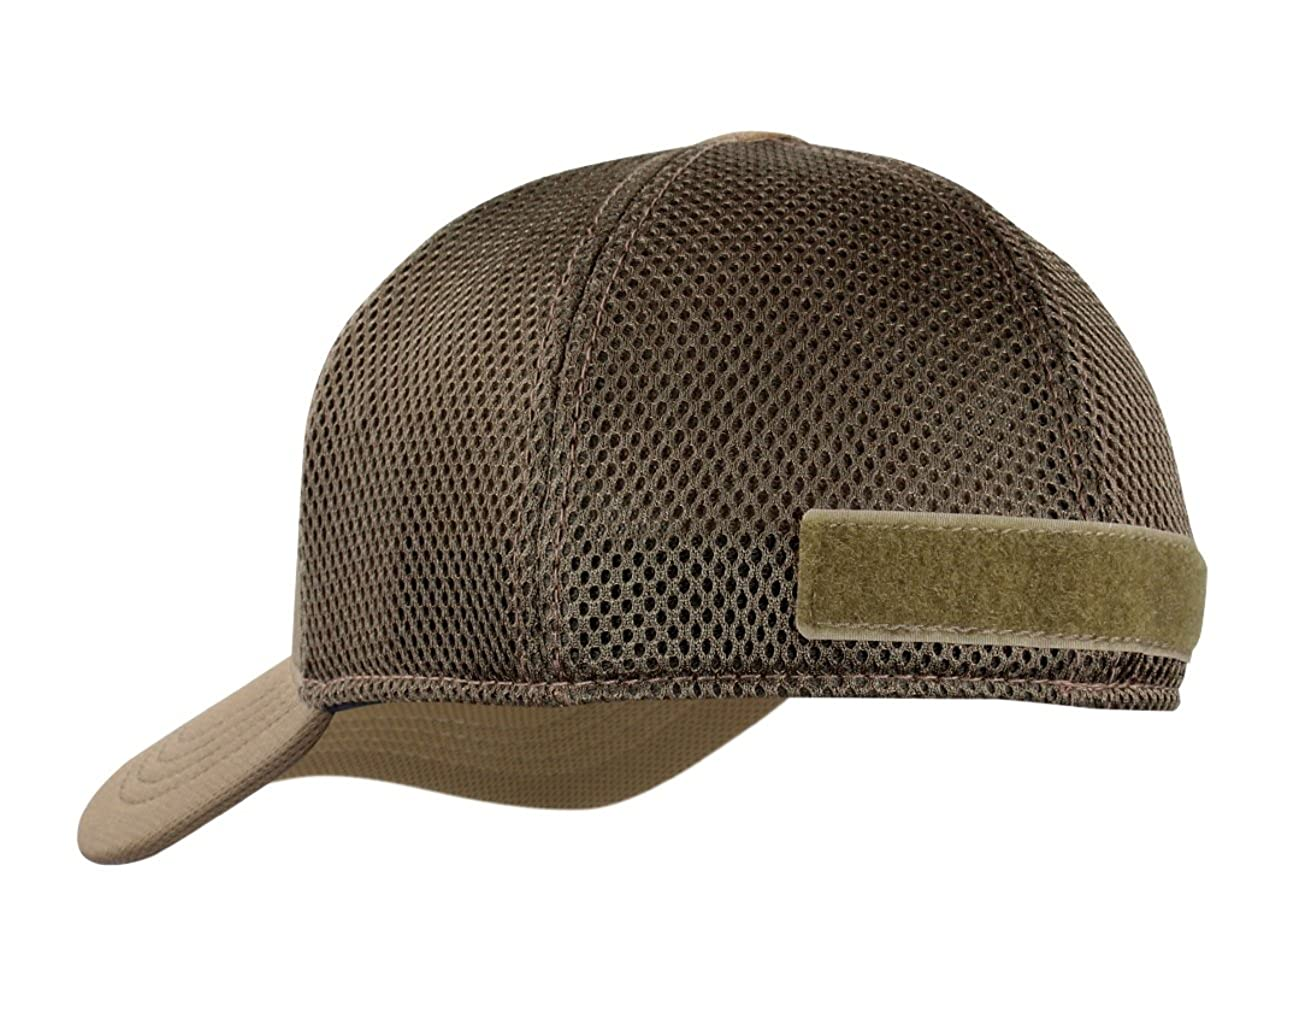 52b1c29a146 Active Duty Gear Condor Flex Mesh Cap  (Brown ) + PVC Flag ...